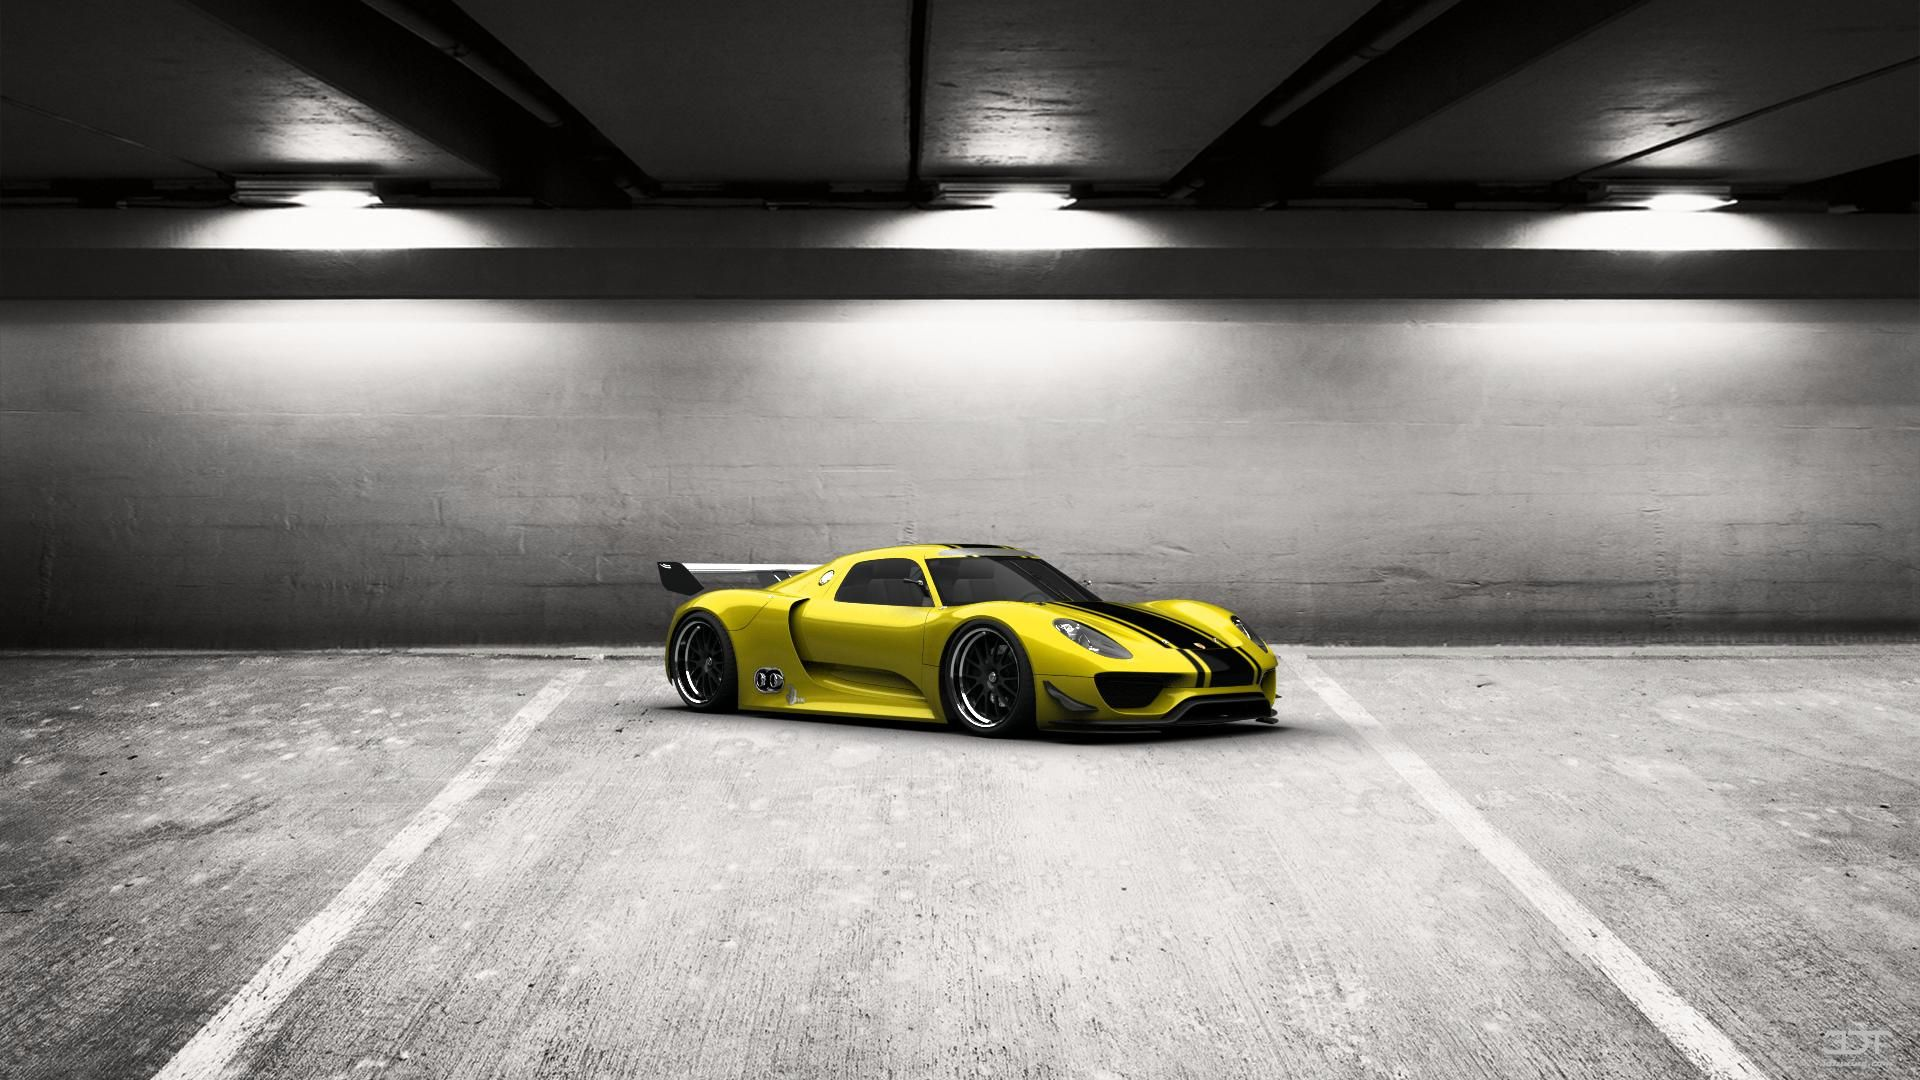 Come ti sembra il mio tuning #Porsche 918RSR 2012 in 3DTuning #3dtuning #tuning